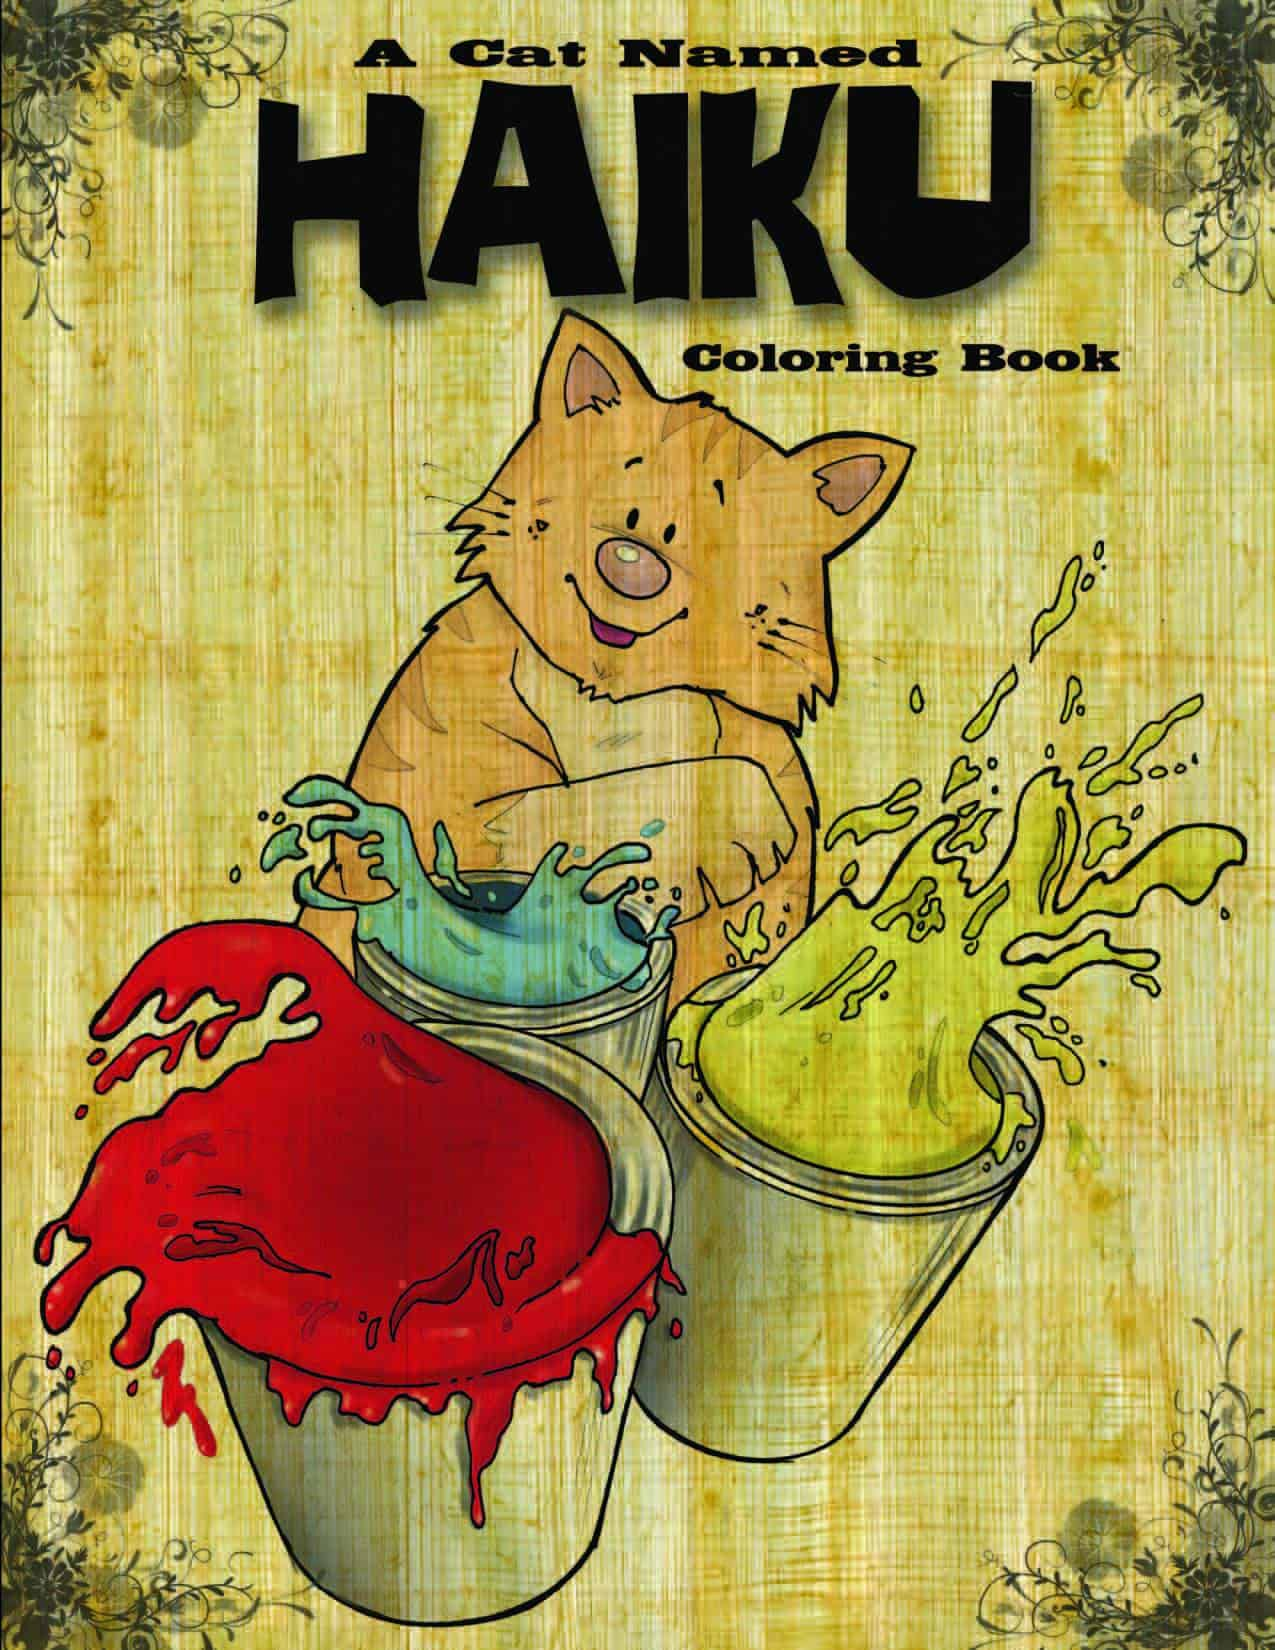 A Cat Named Haiku Coloring Book